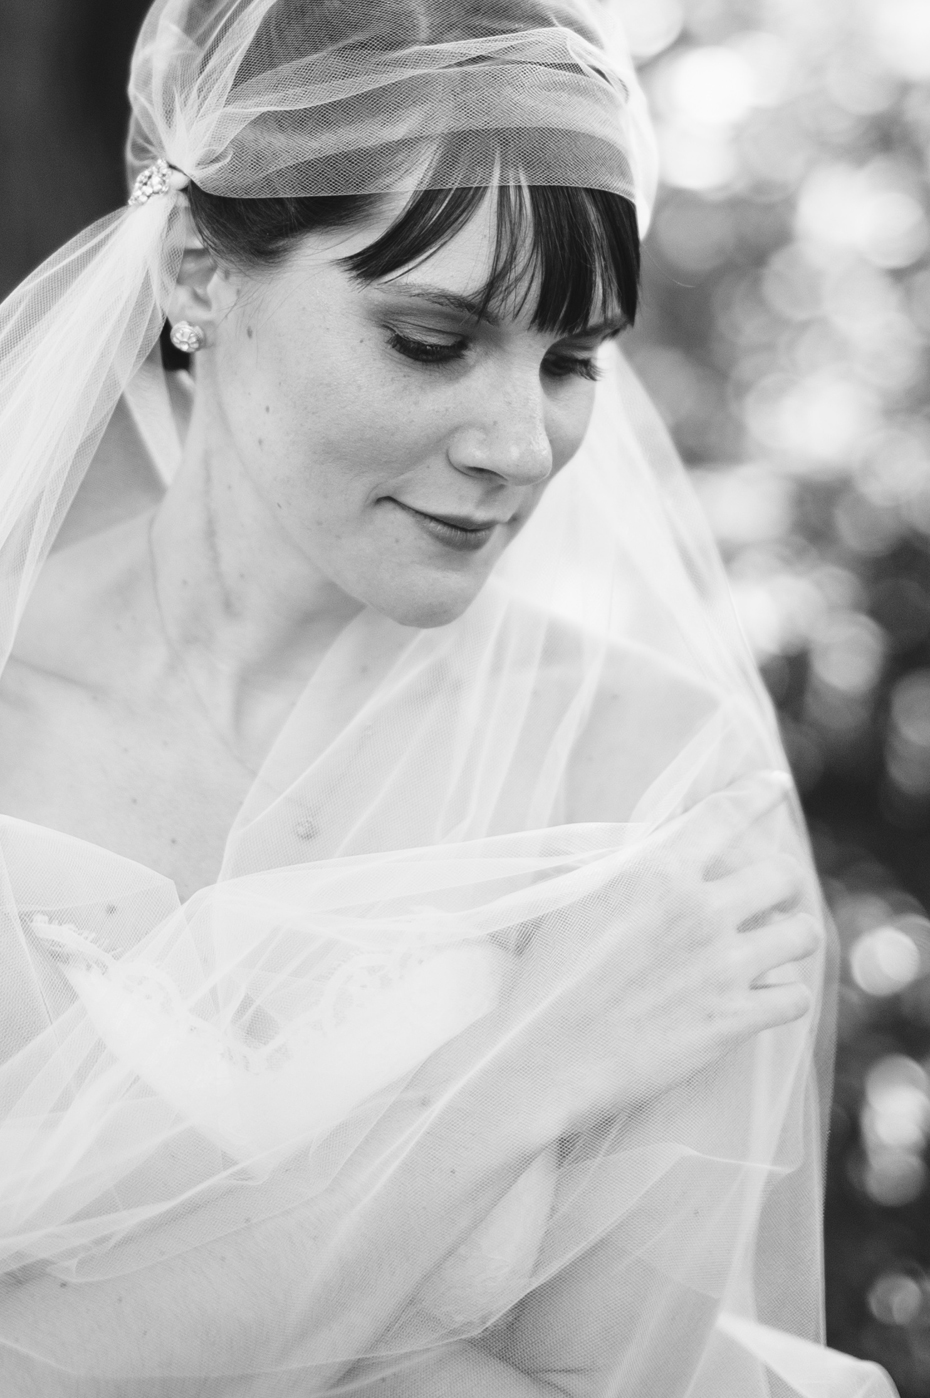 Black and white Bridal portraits with a bride wearing a vintage styled veil by Ann Arbor Michigan wedding photographer, Heather Jowett.